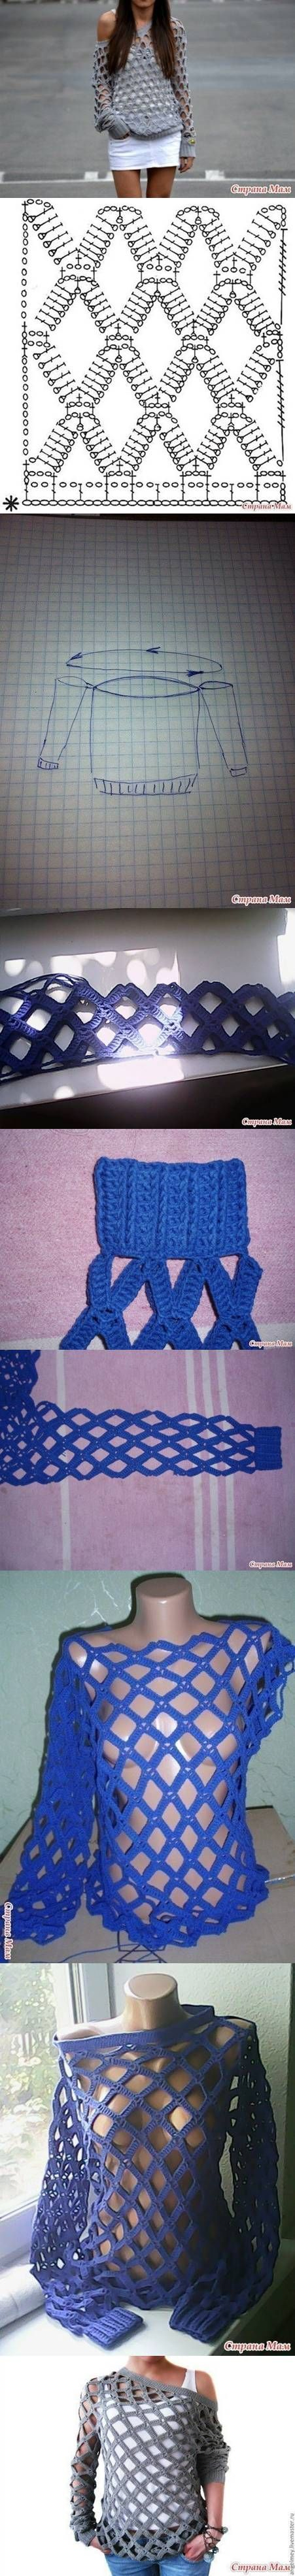 DIY Crochet Blouse DIY Projects | UsefulDIY.com Follow Us on Facebook ==> http://www.facebook.com/UsefulDiy